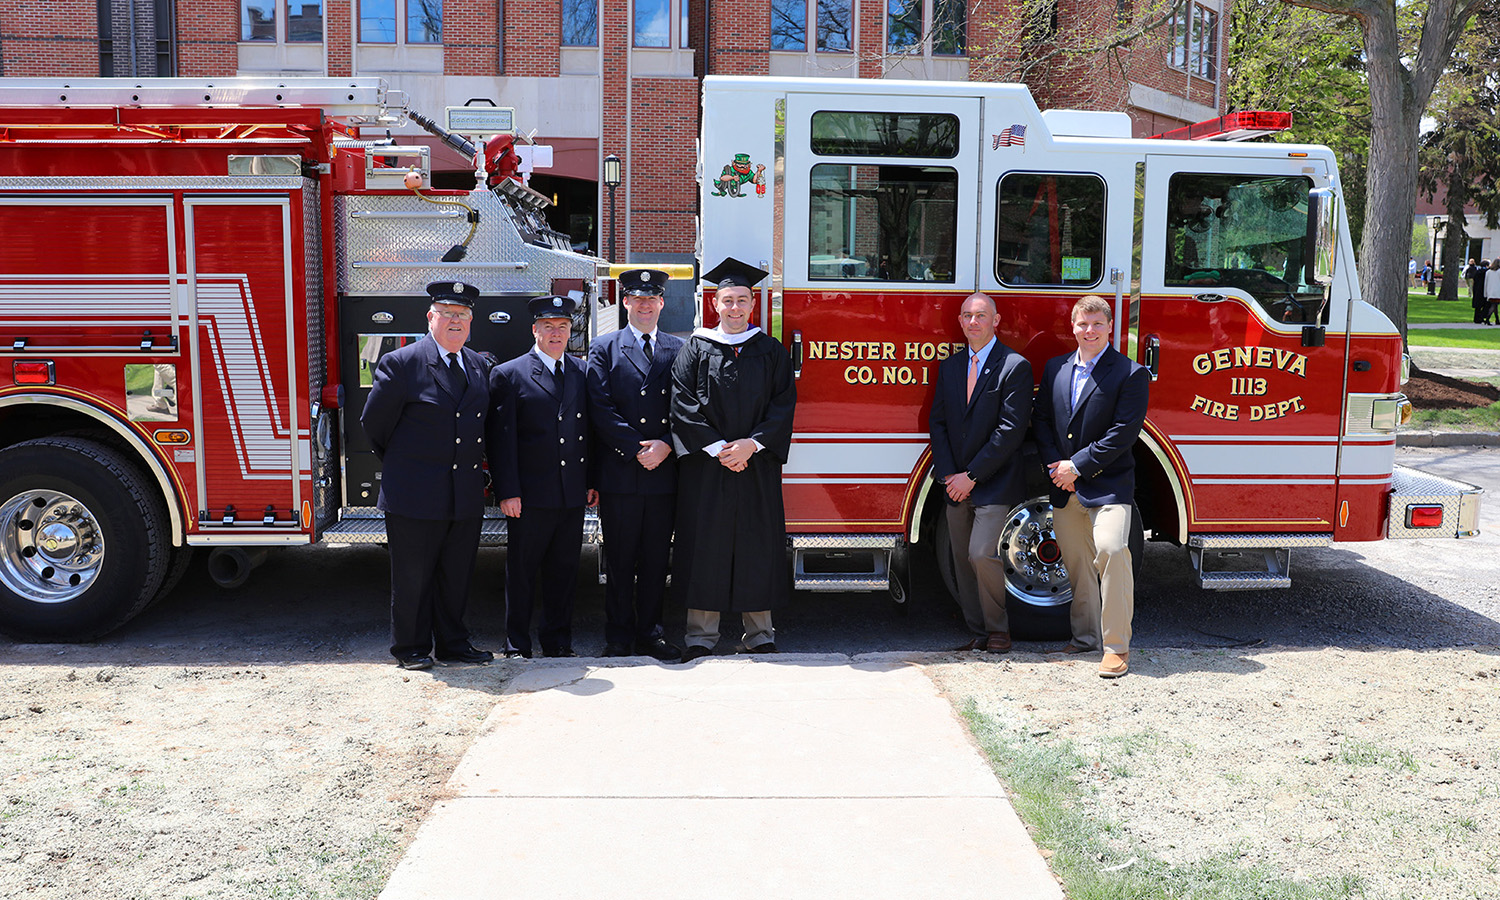 Volunteer firefighter John Hillenbrand '17 poses for a photo with members of the Nester Hose Company following the Commencement Ceremony on Sunday.